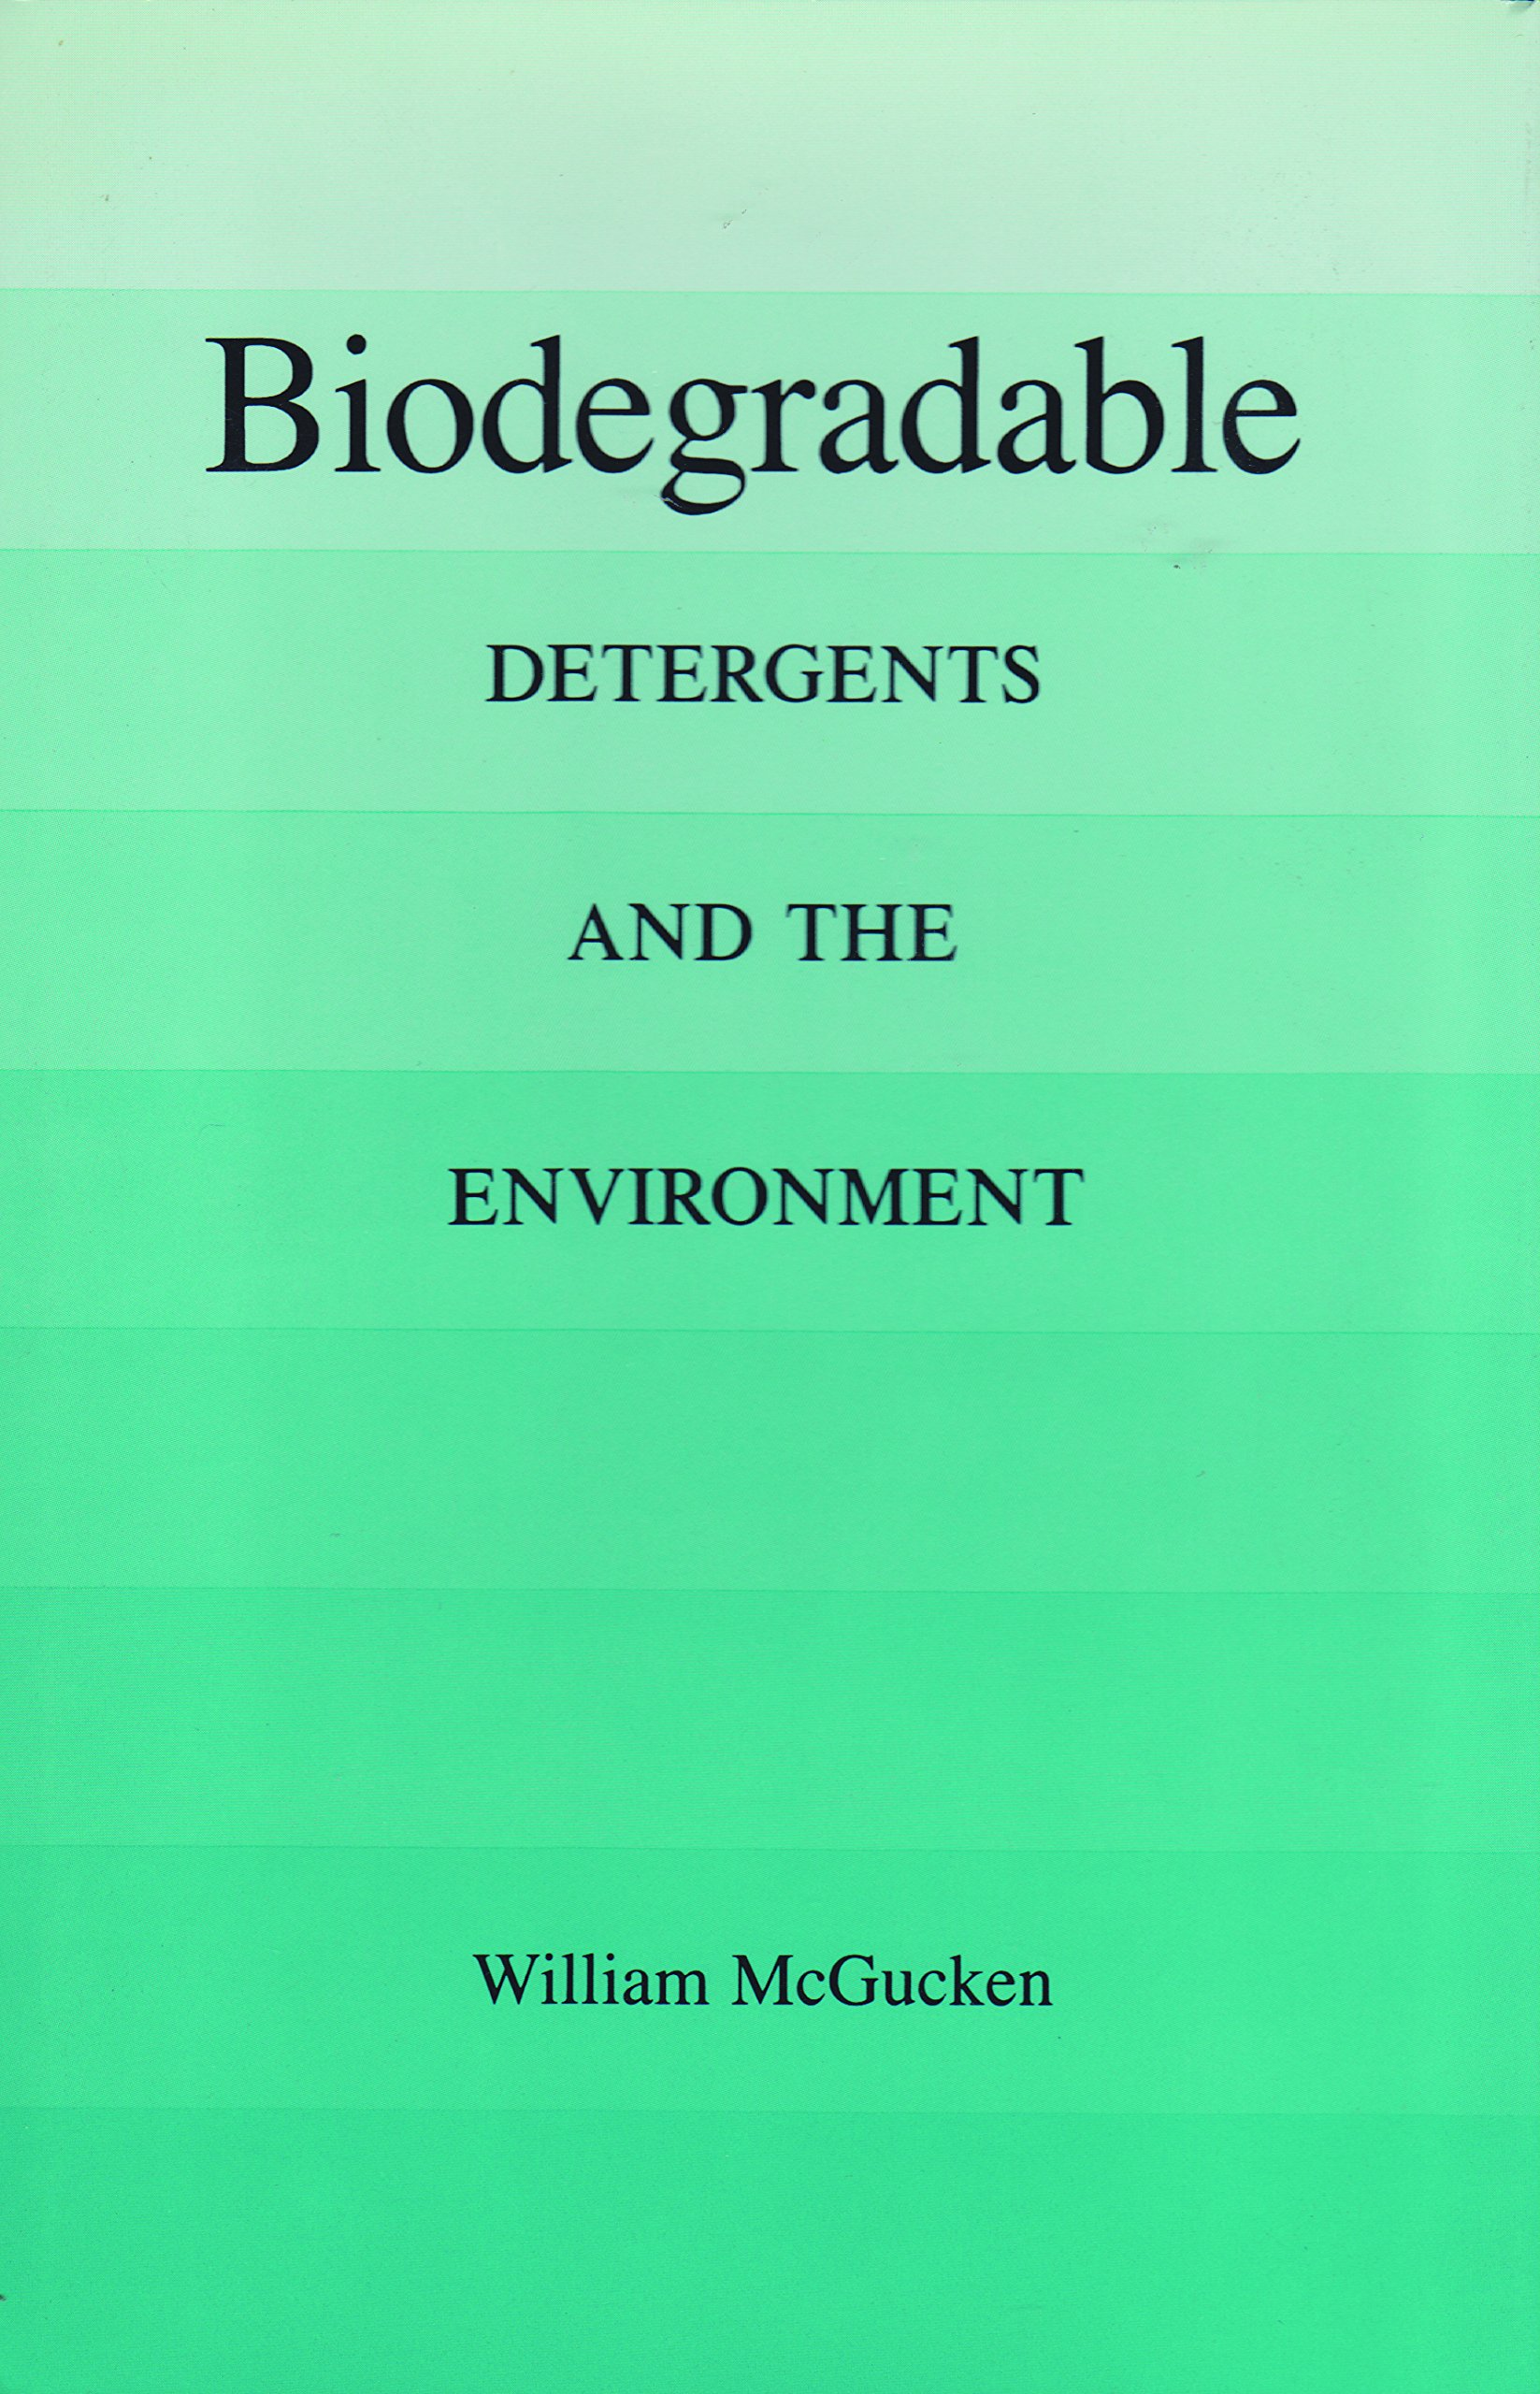 Biodegradable: Detergents and the Environment Environmental ...